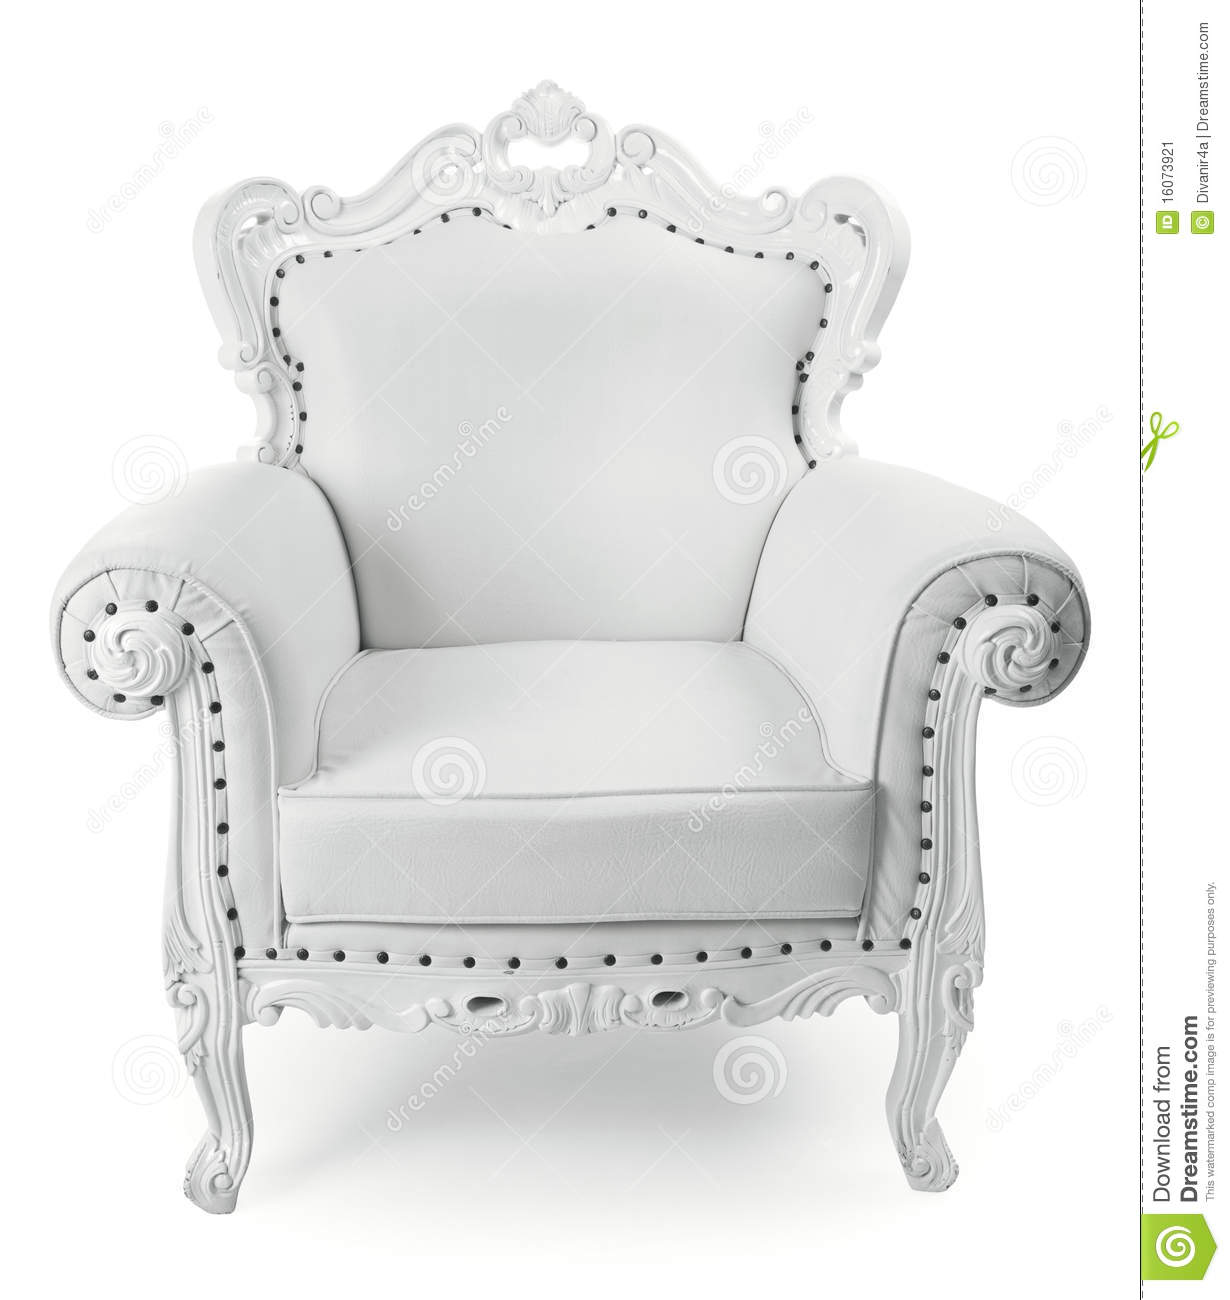 White Chair Stock Image Image 16073921 : white chair 16073921 <strong>Back</strong> Office Chair from www.dreamstime.com size 1230 x 1300 jpeg 87kB